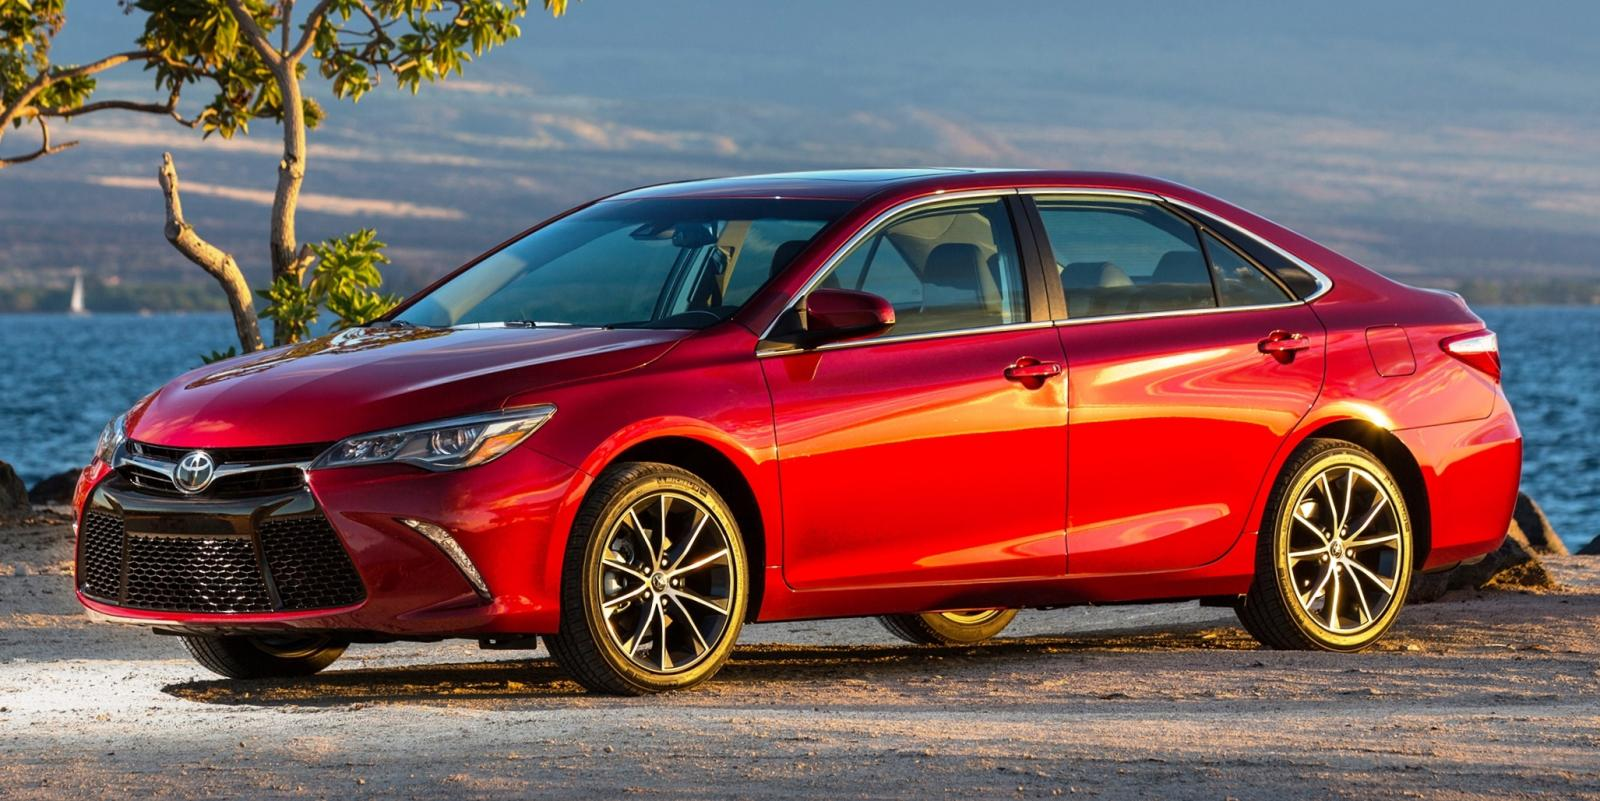 hd road test review 2015 toyota camry xse 14. Black Bedroom Furniture Sets. Home Design Ideas